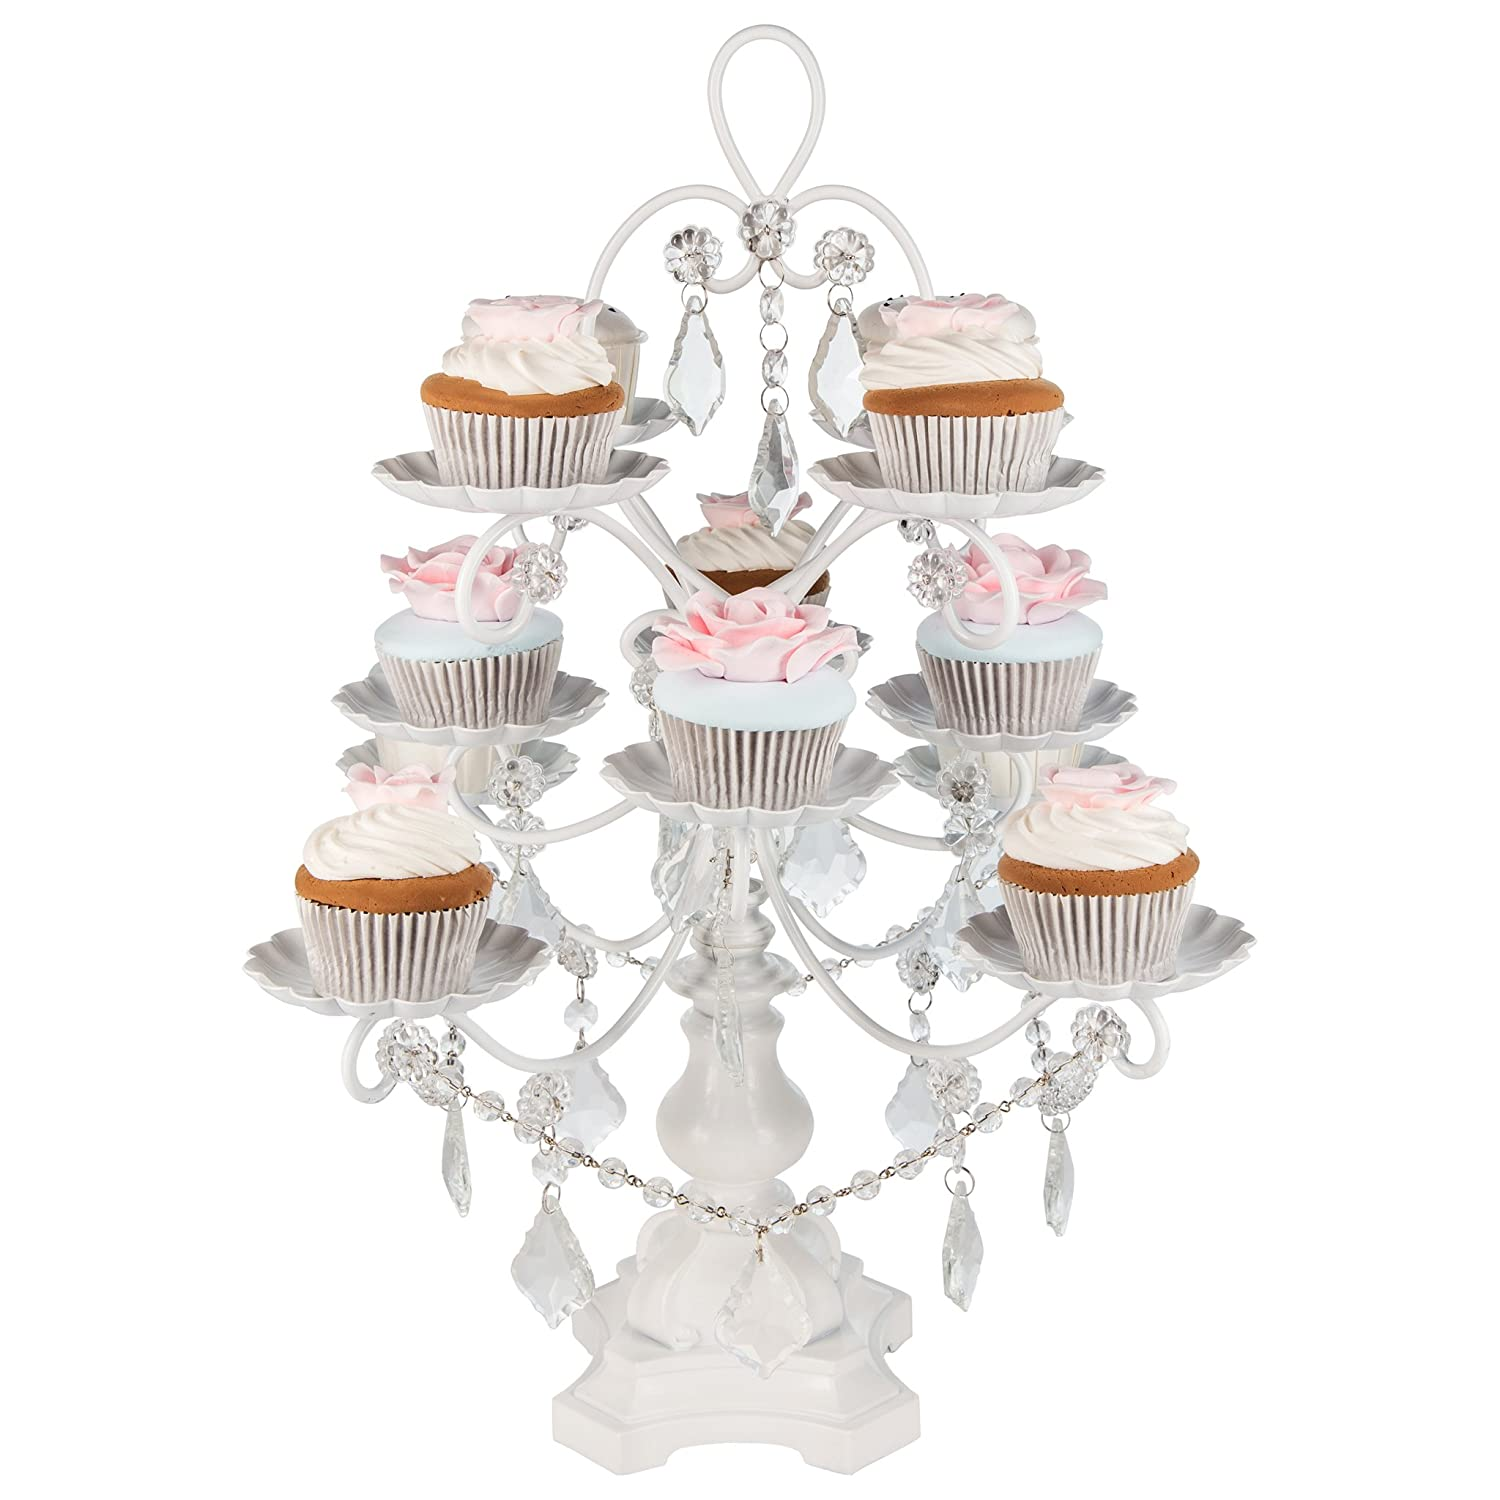 Amazon madeleine collection white 12 piece cupcake stand metal amazon madeleine collection white 12 piece cupcake stand metal tiered cake dessert display tower holder with crystals kitchen dining arubaitofo Image collections